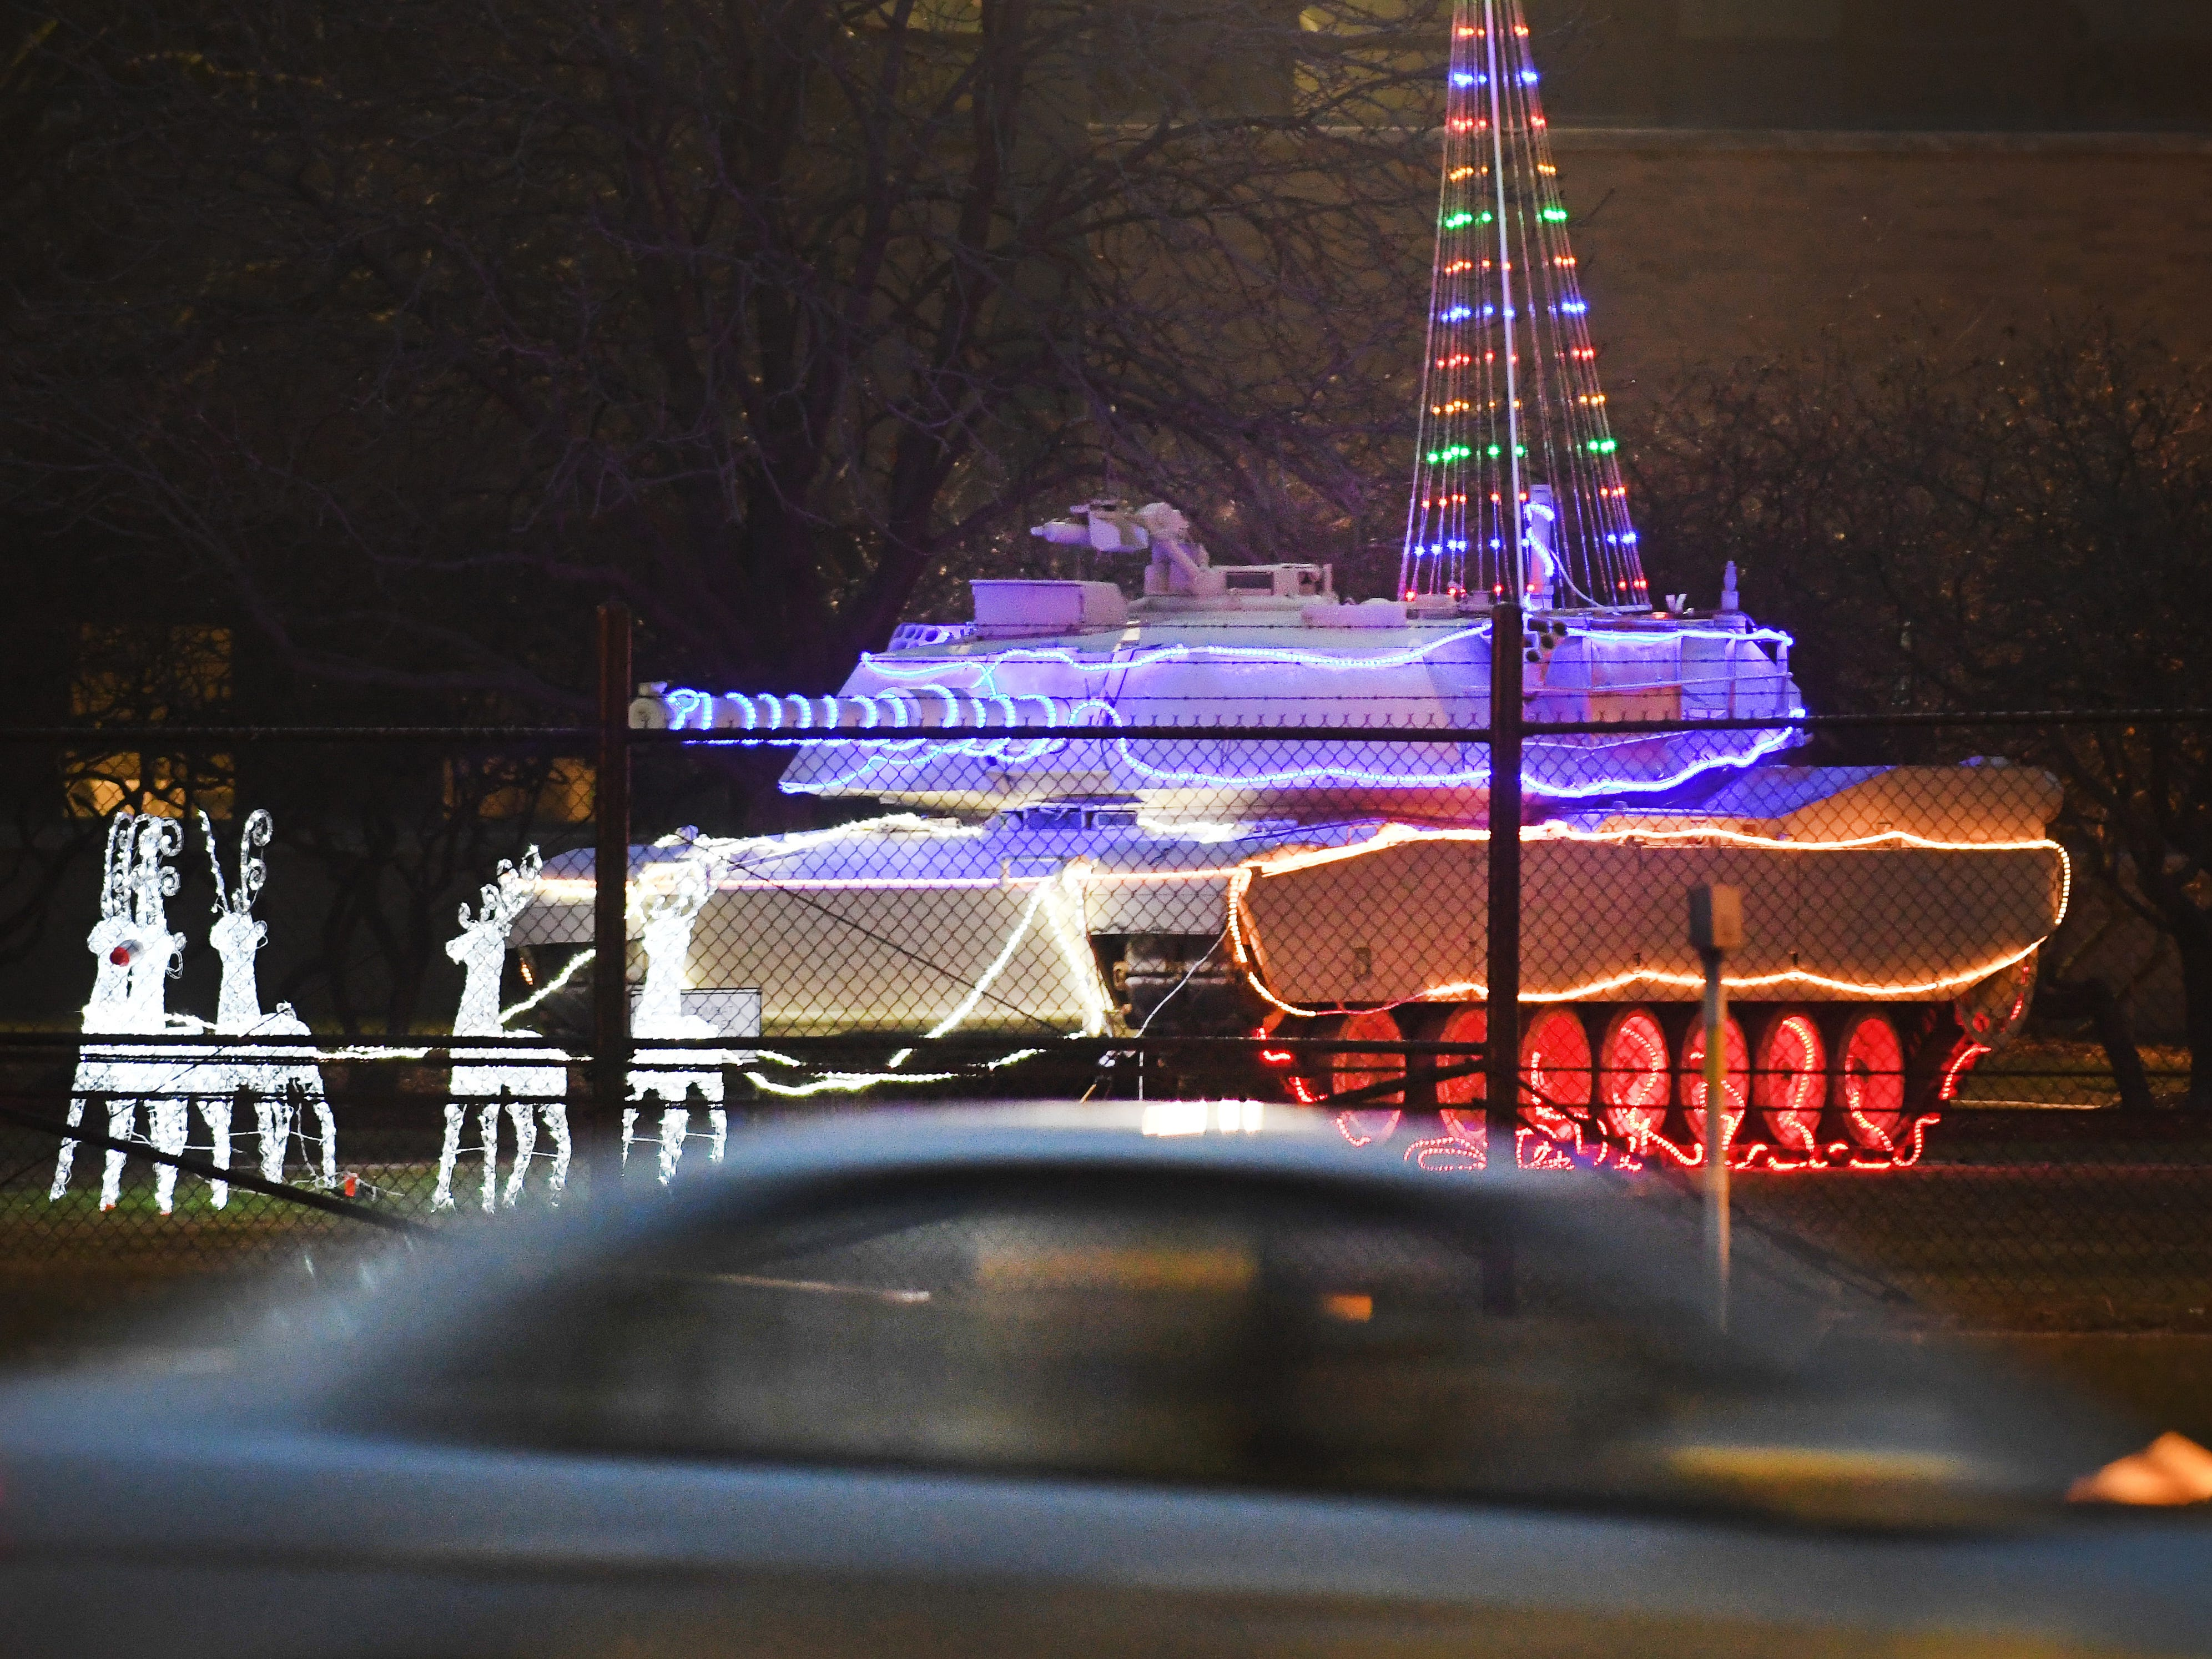 A decorated tank in front of the U.S. Army Tank Automotive Command sends a cheery, yet deadly holiday greeting off of E. Eleven Mile Road in Warren, Michigan.